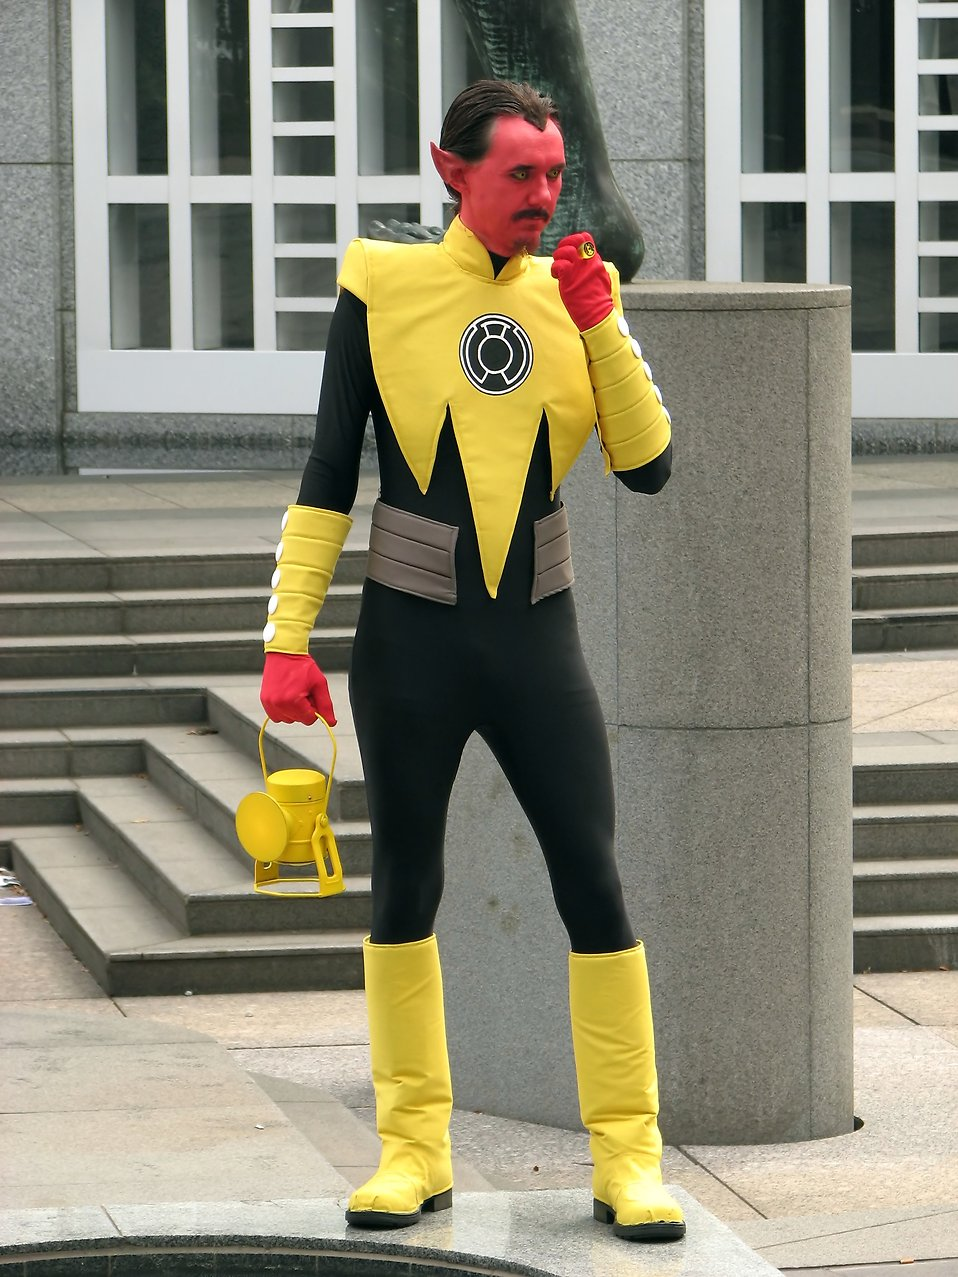 A man in a Yellow Lantern costume at Dragoncon 2009 in Atlanta, Georgia : Free Stock Photo